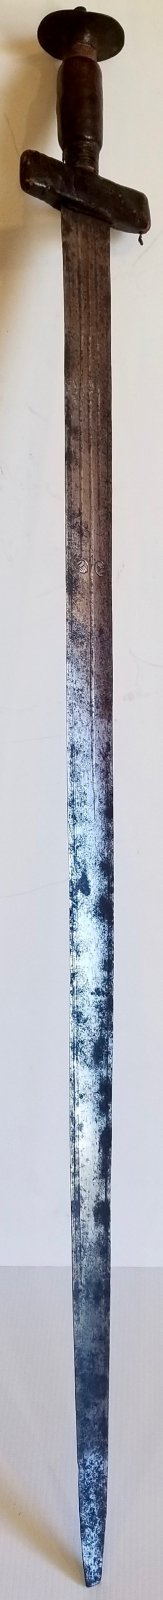 Late 19th century North West African Touareg Takauba sword